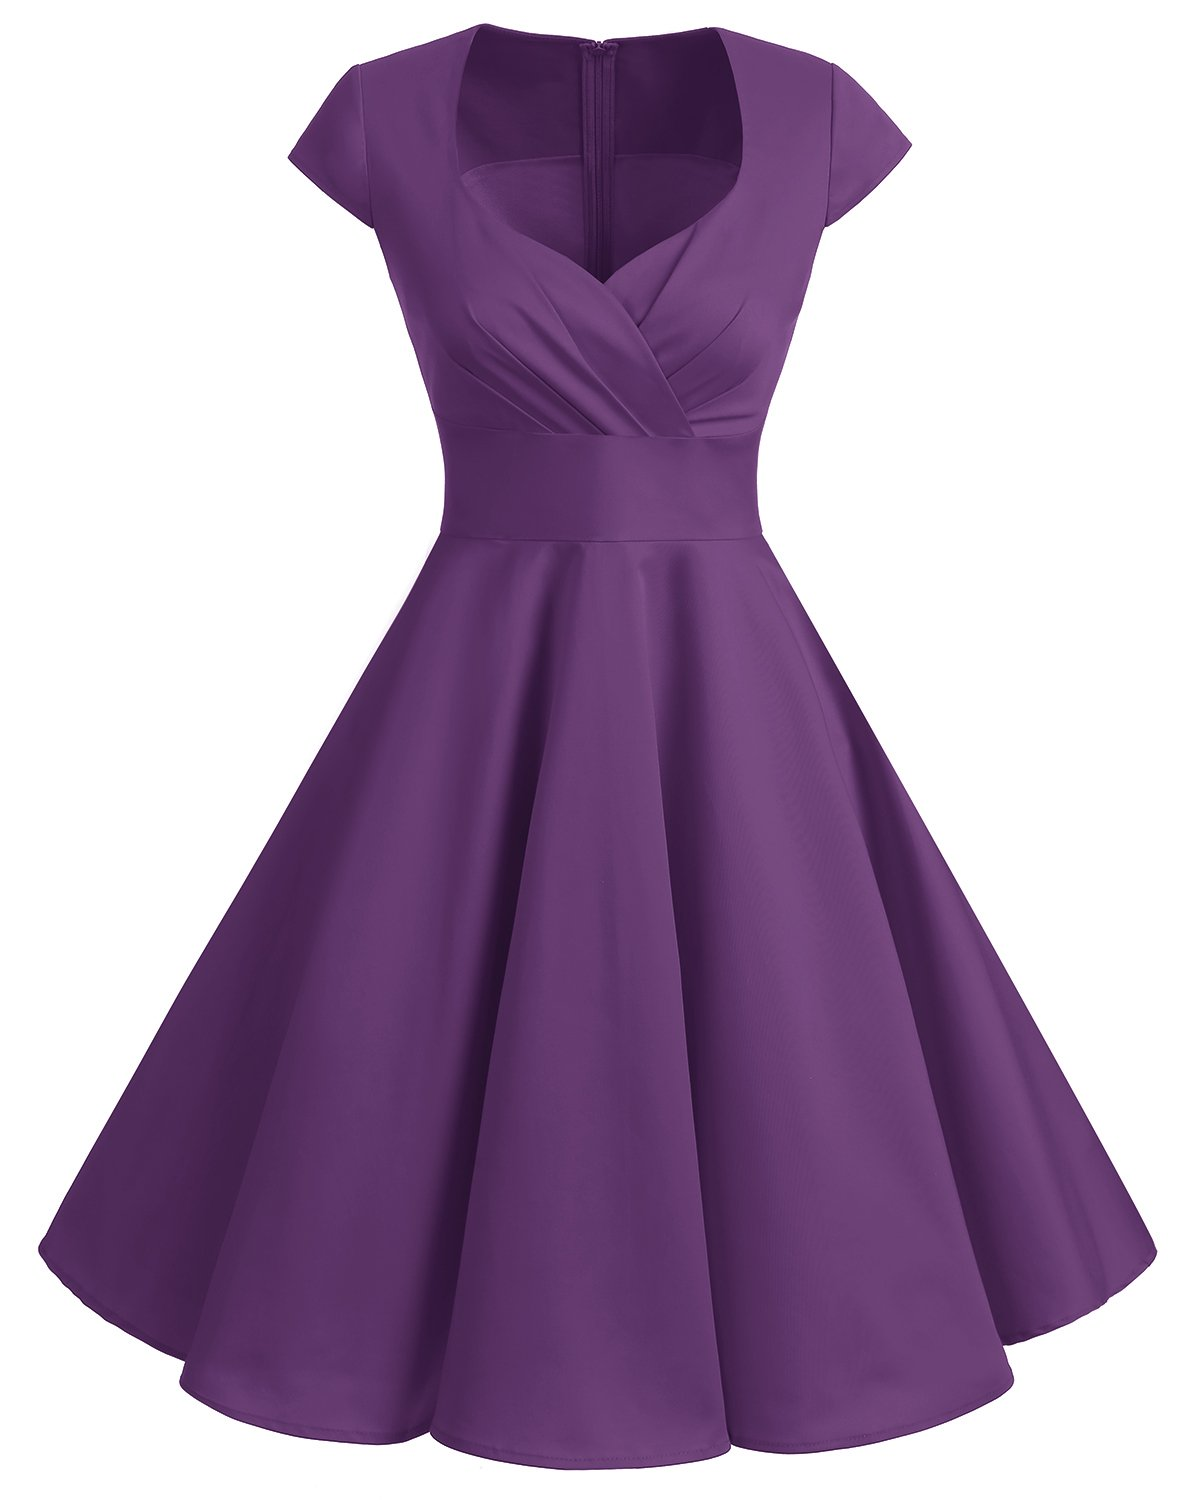 Bbonlinedress Women Short 1950s Retro Vintage Cocktail Party Swing Dresses Purple M